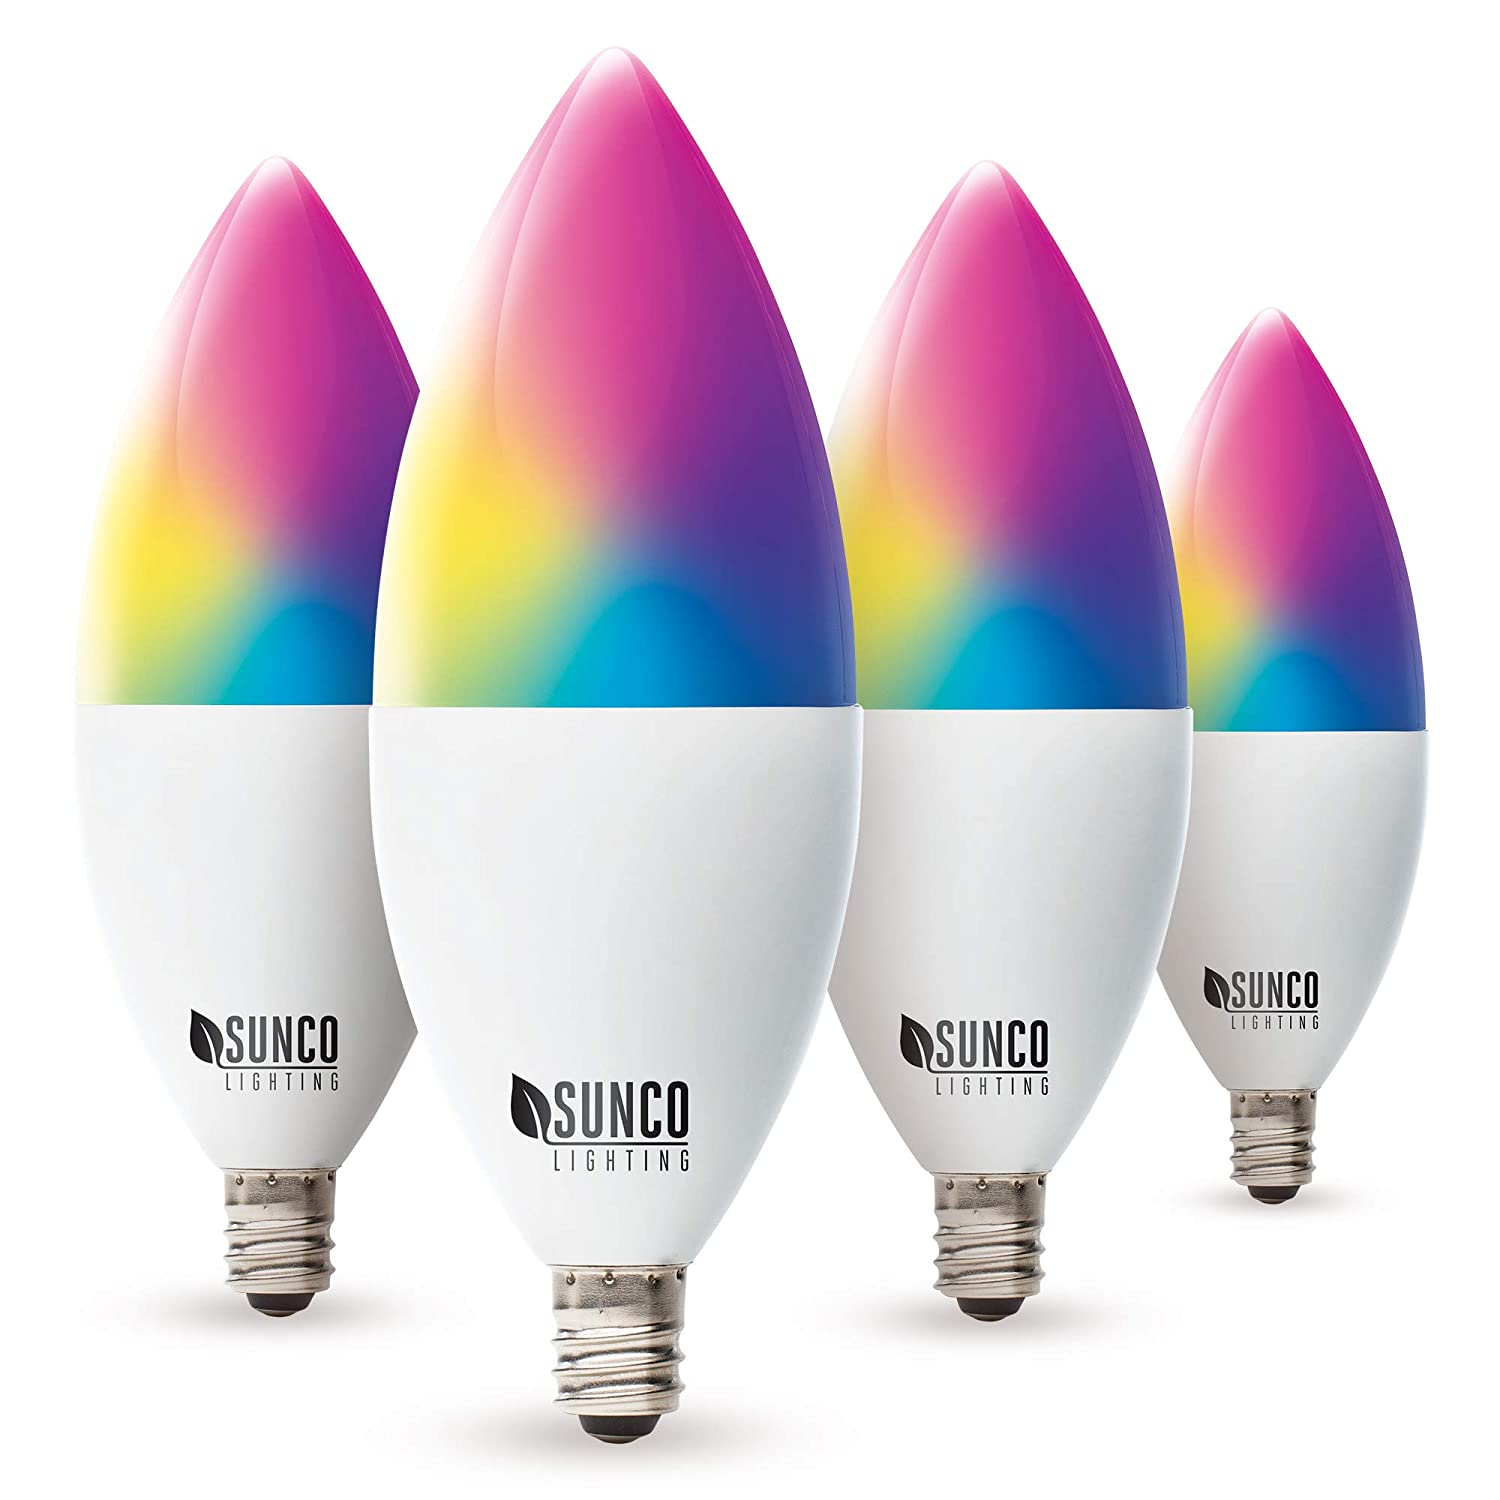 Sunco Lighting 4 Pack WiFi LED Smart Bulb, B11 Candelabra, 4.5W, E12 Base, Color Changing (RGB & CCT), Dimmable, Compatible with Amazon Alexa, Google Assistant & Apple HomeKit - No Hub Required